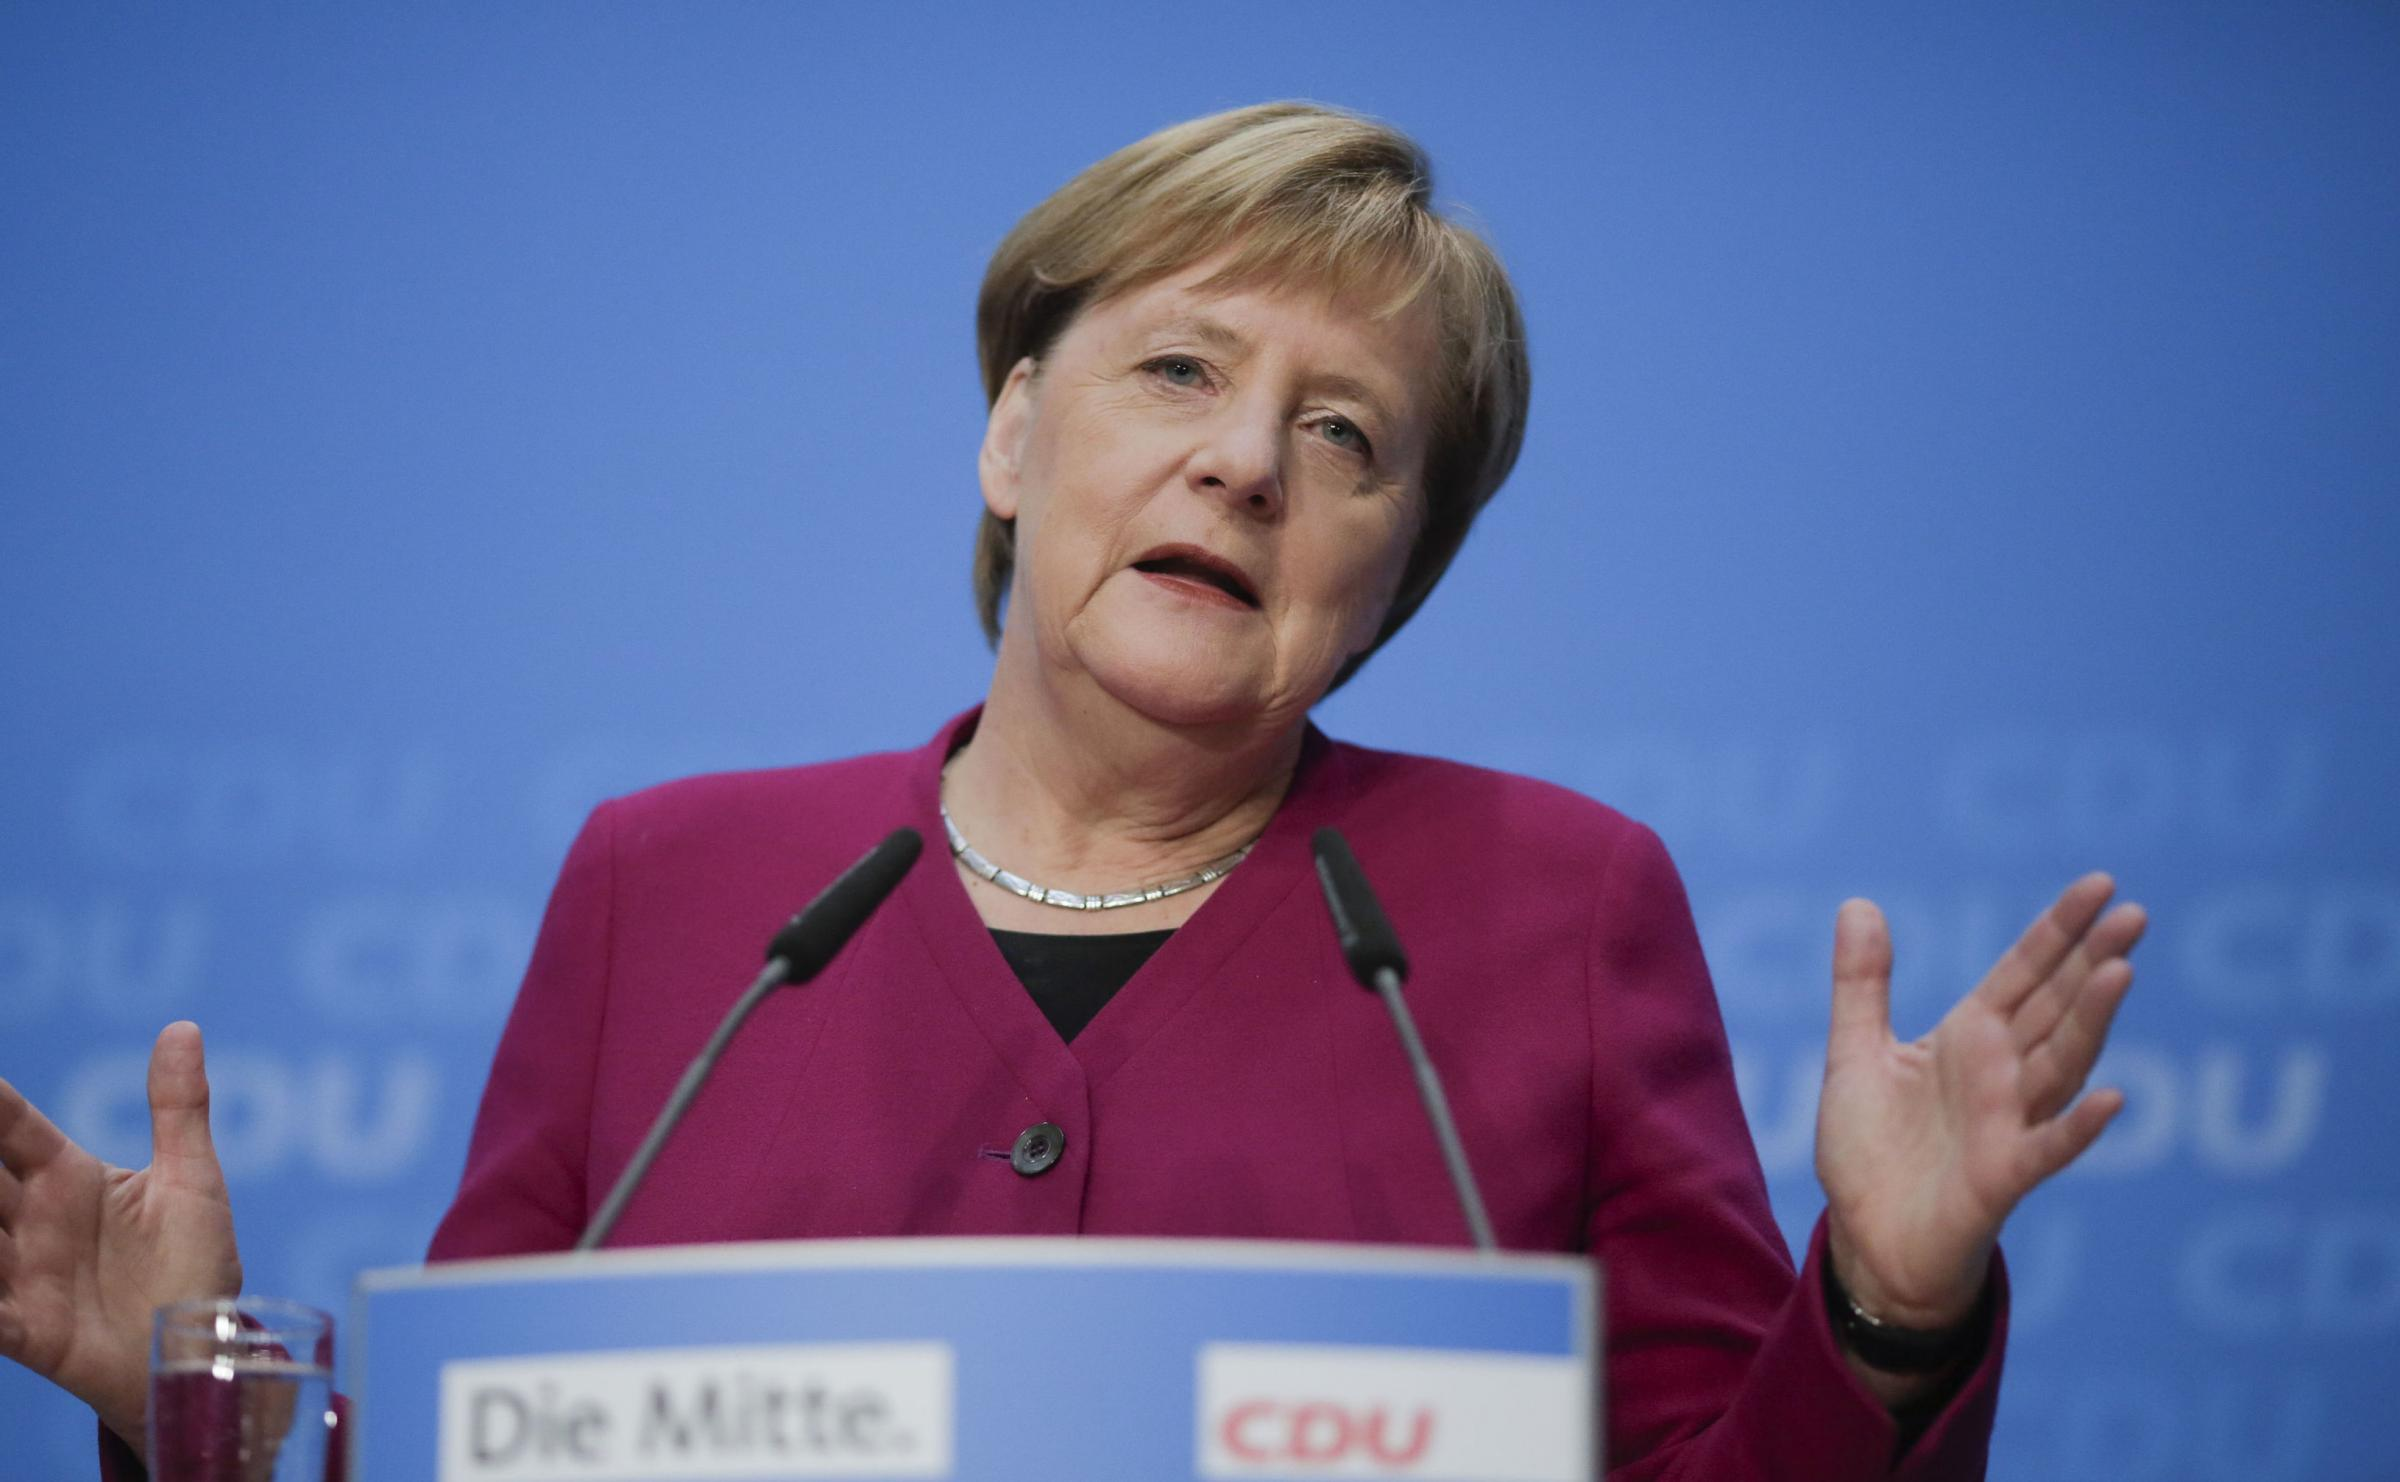 Sensitive Personal Data of 100 German Politicians Hacked & Leaked Online